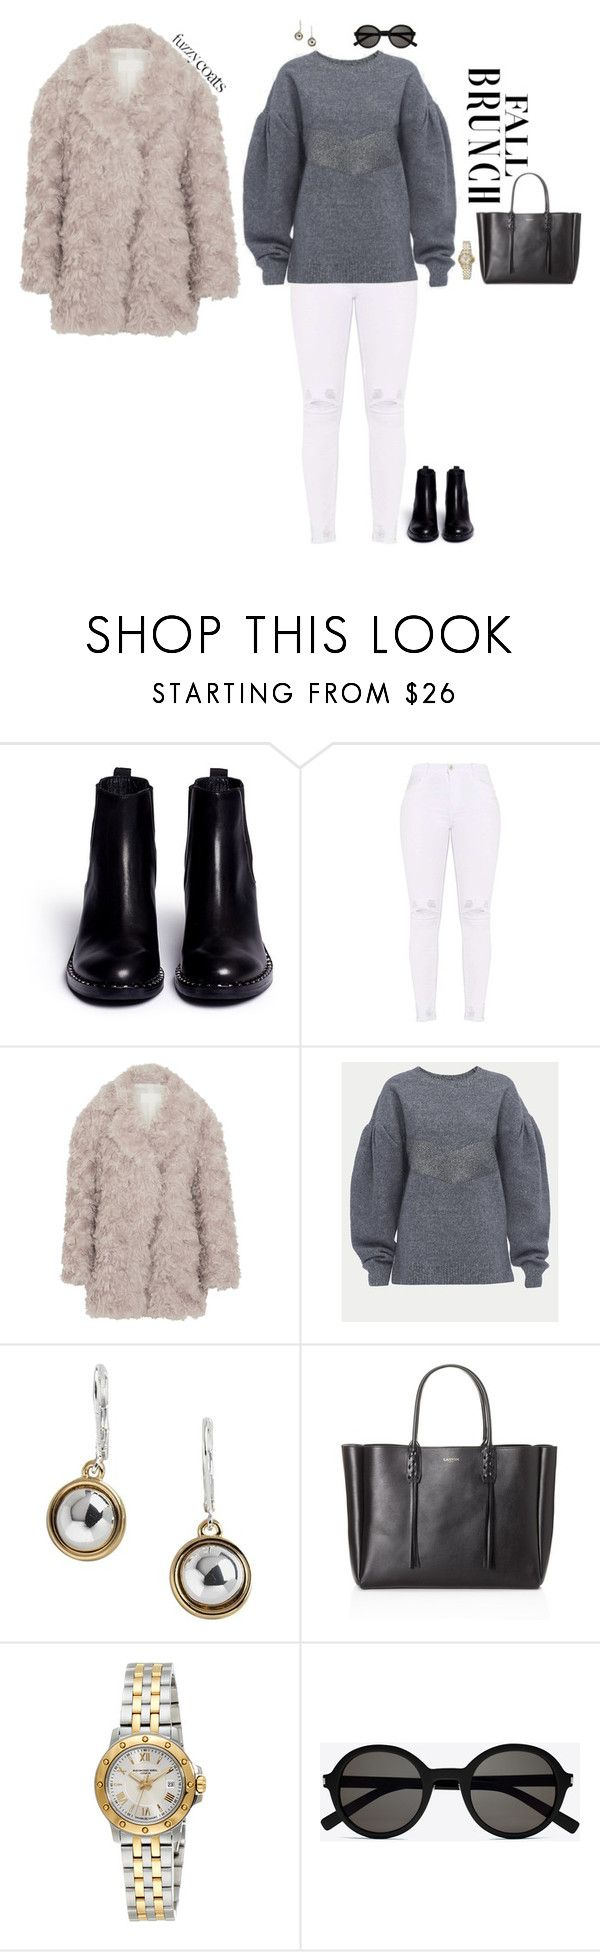 """Fuzzy Coats: Brunch"" by jenily ❤ liked on Polyvore featuring Ash, Maison Margiela, Frame, Lauren Ralph Lauren, Lanvin, Raymond Weil and Yves Saint Laurent"